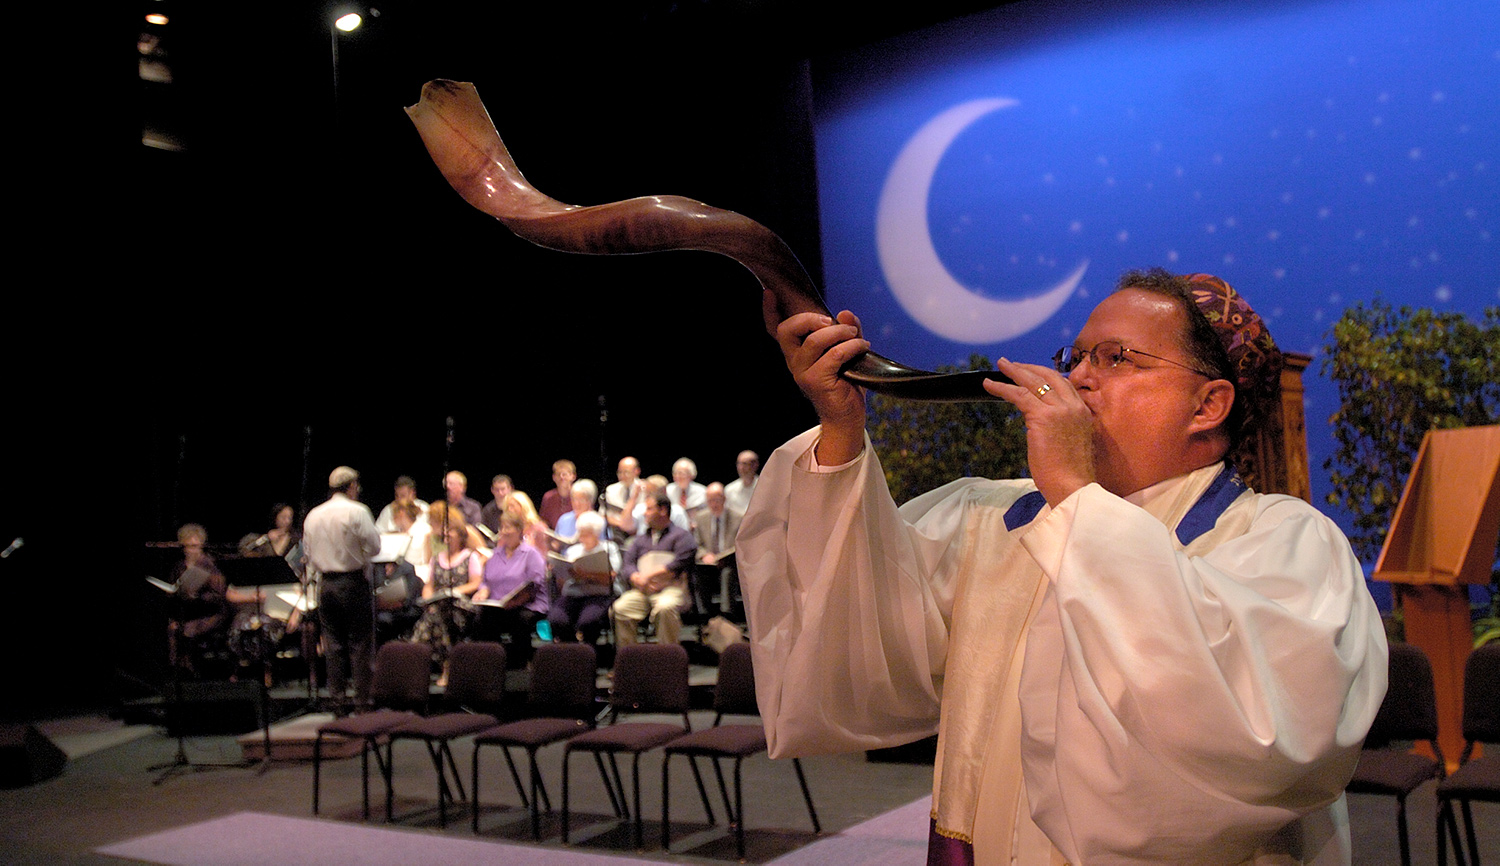 A rabbi practices blowing the shofar before the start of Rosh Hashanah services. Getty.